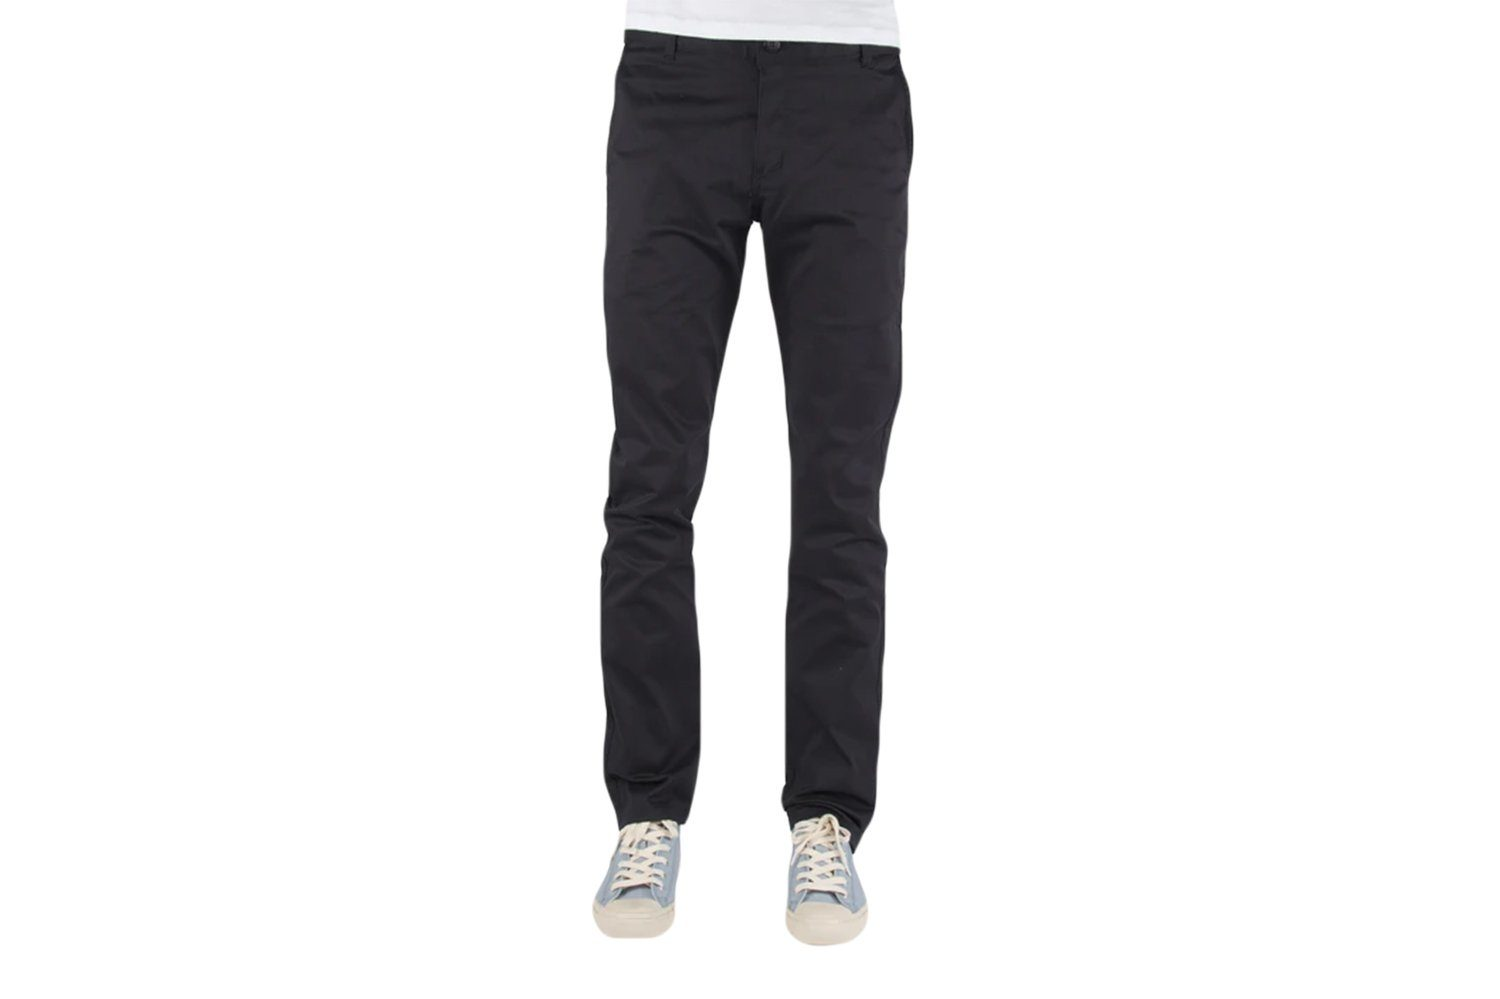 SLIM CHINO - 015244 MENS SOFTGOODS NAKED & FAMOUS